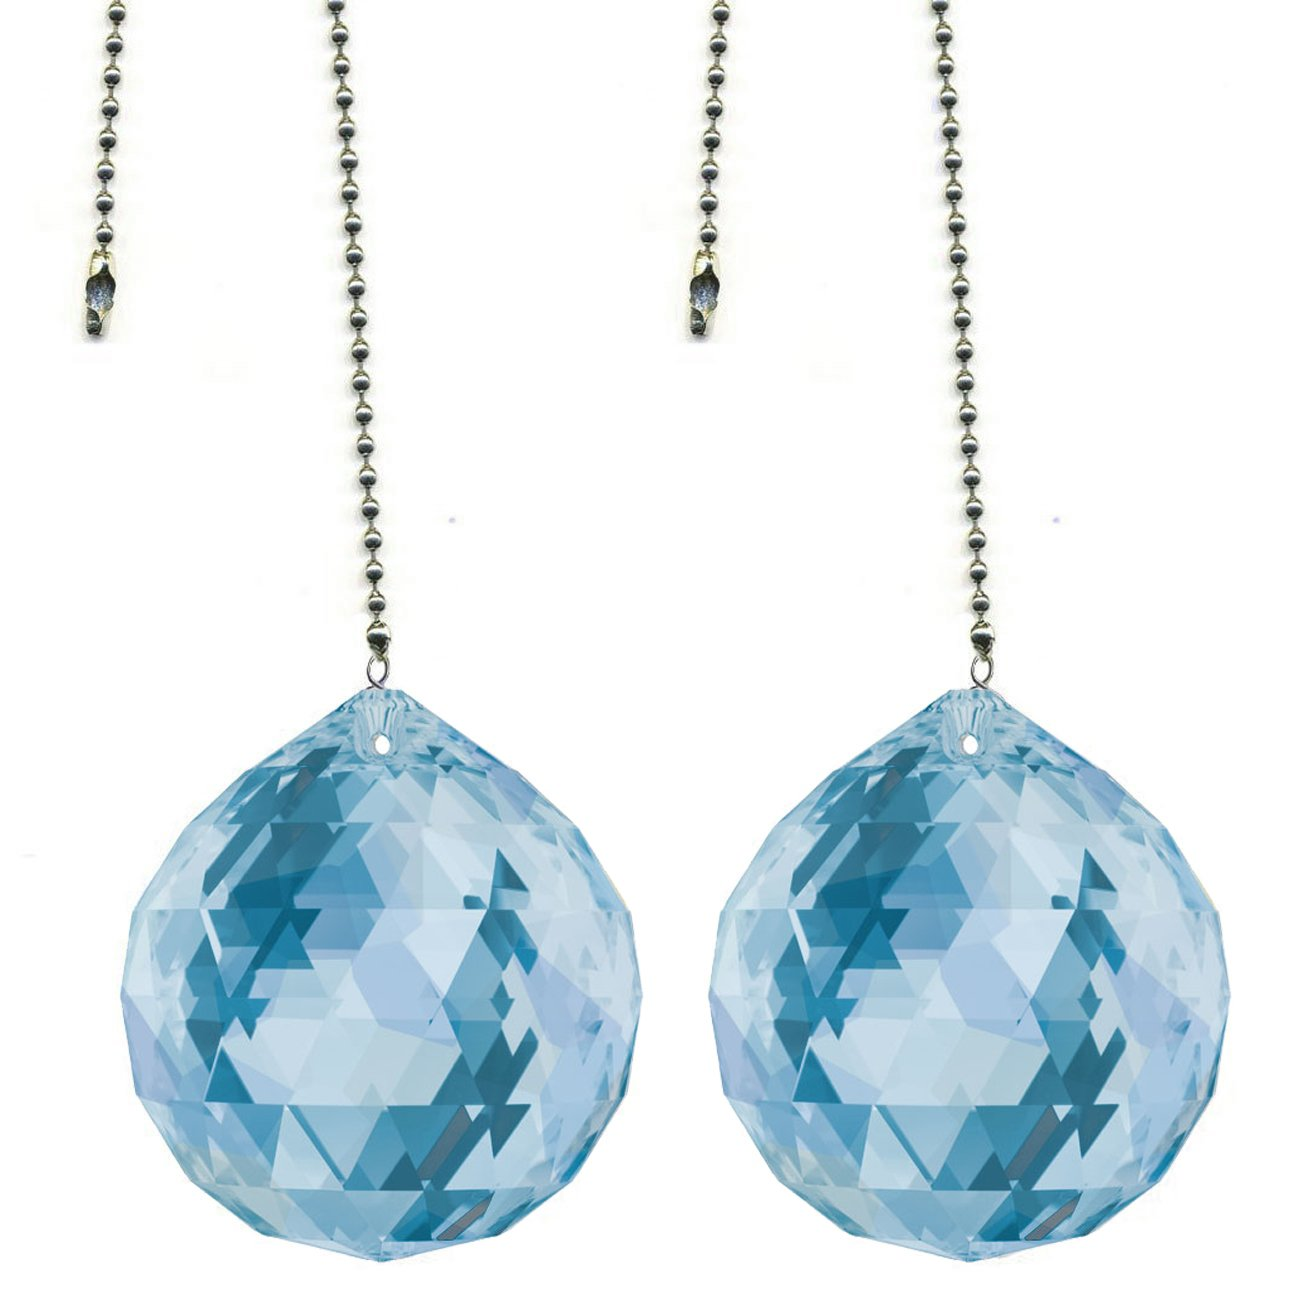 CrystalPlace Ceiling Fan Pull Chain 30mm Swarovski Strass Medium Sapphire Faceted Ball Prism Fan Pulley Set of 2